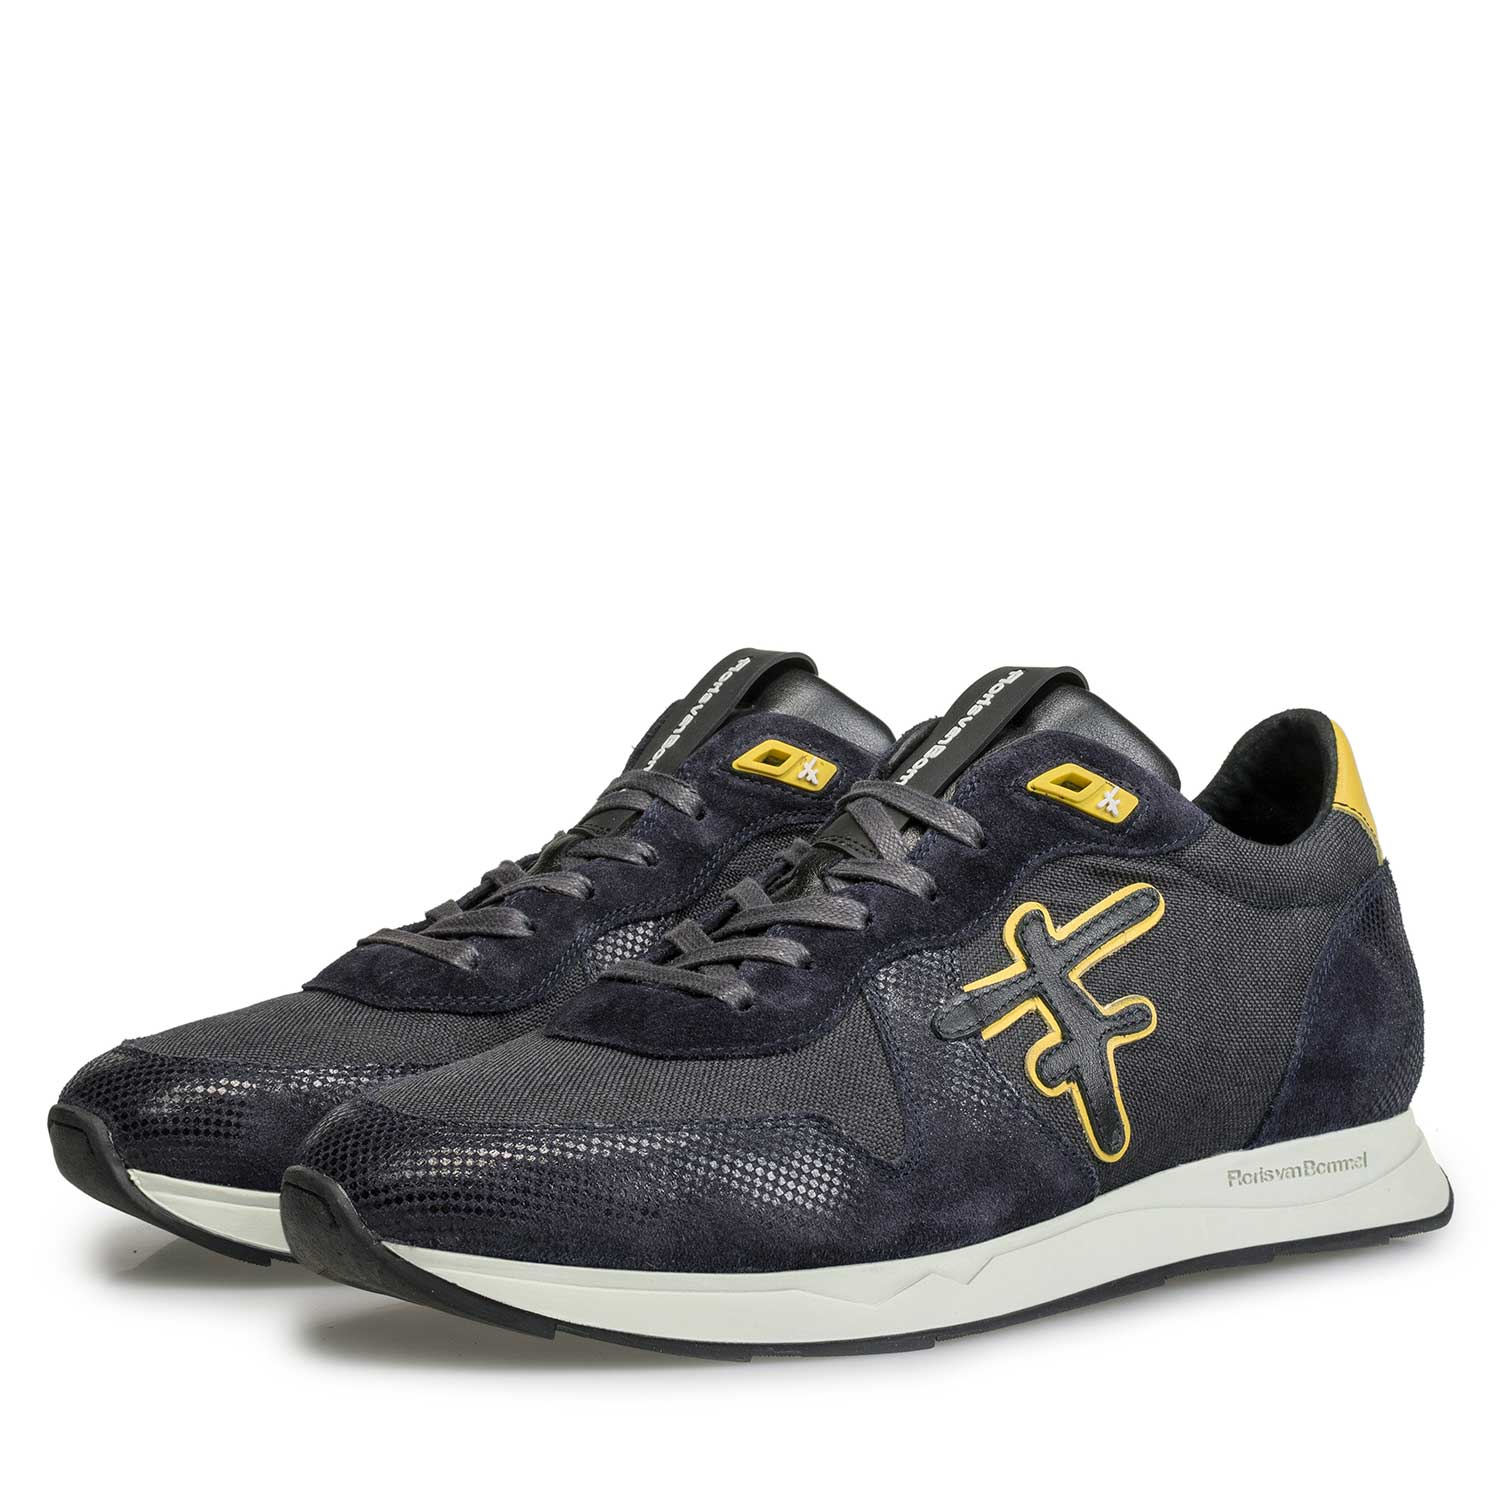 16226/01 - Blue / grey sneaker with yellow details